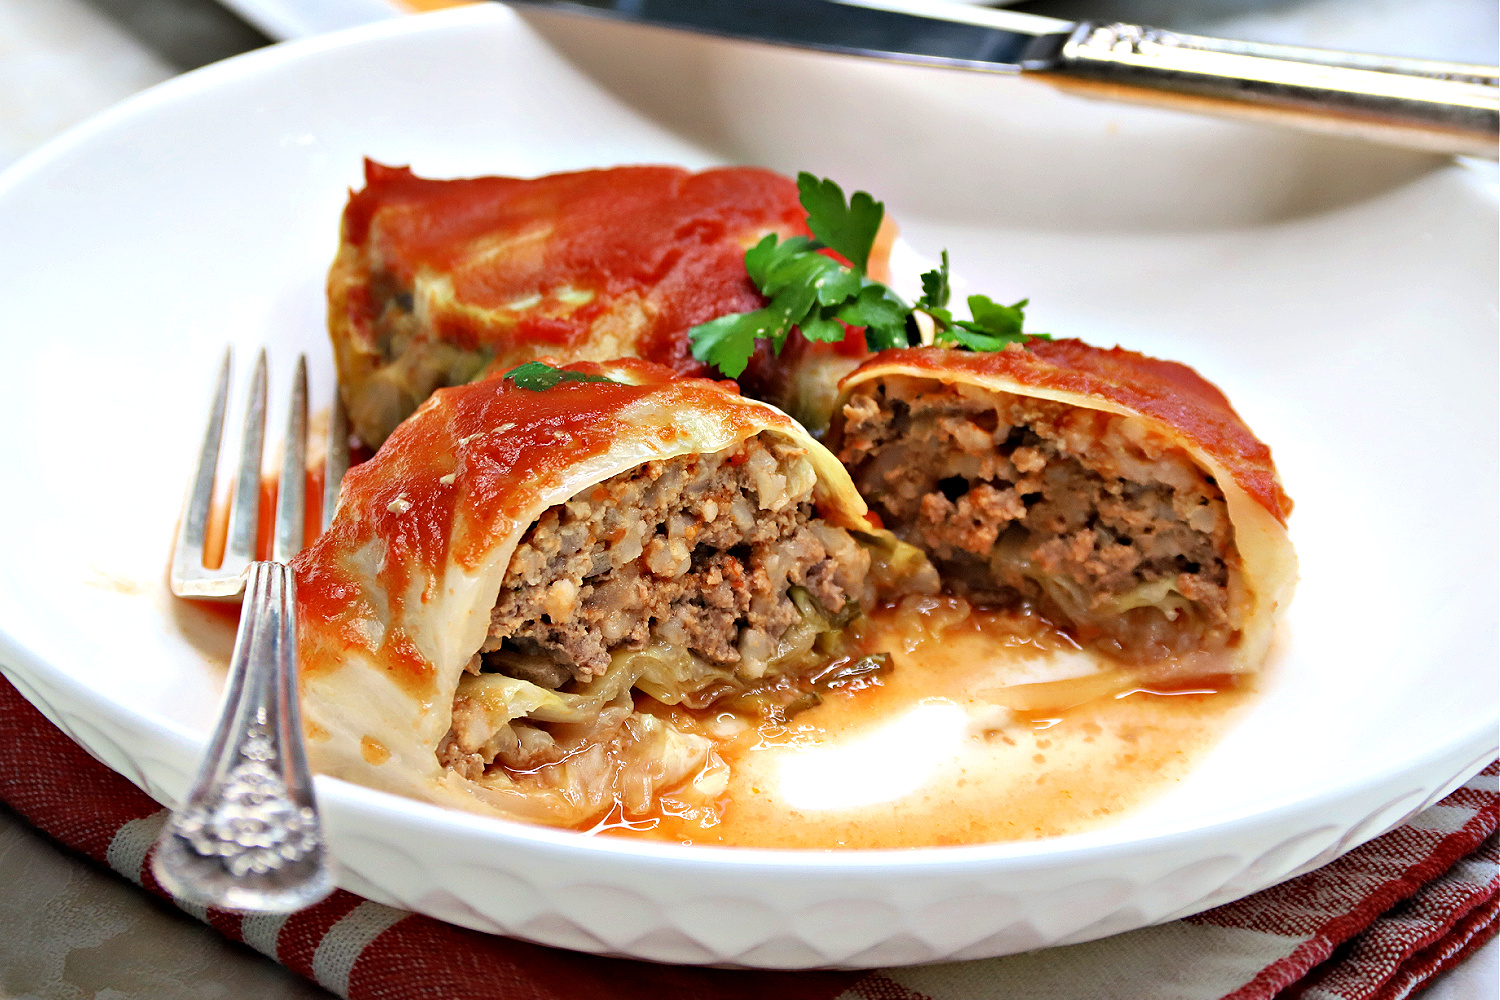 Easy slow cooker recipe for Swedish cabbage rolls filled with ground beef and rice in a tasty sauce is a comforting and satisfying dinner meal.